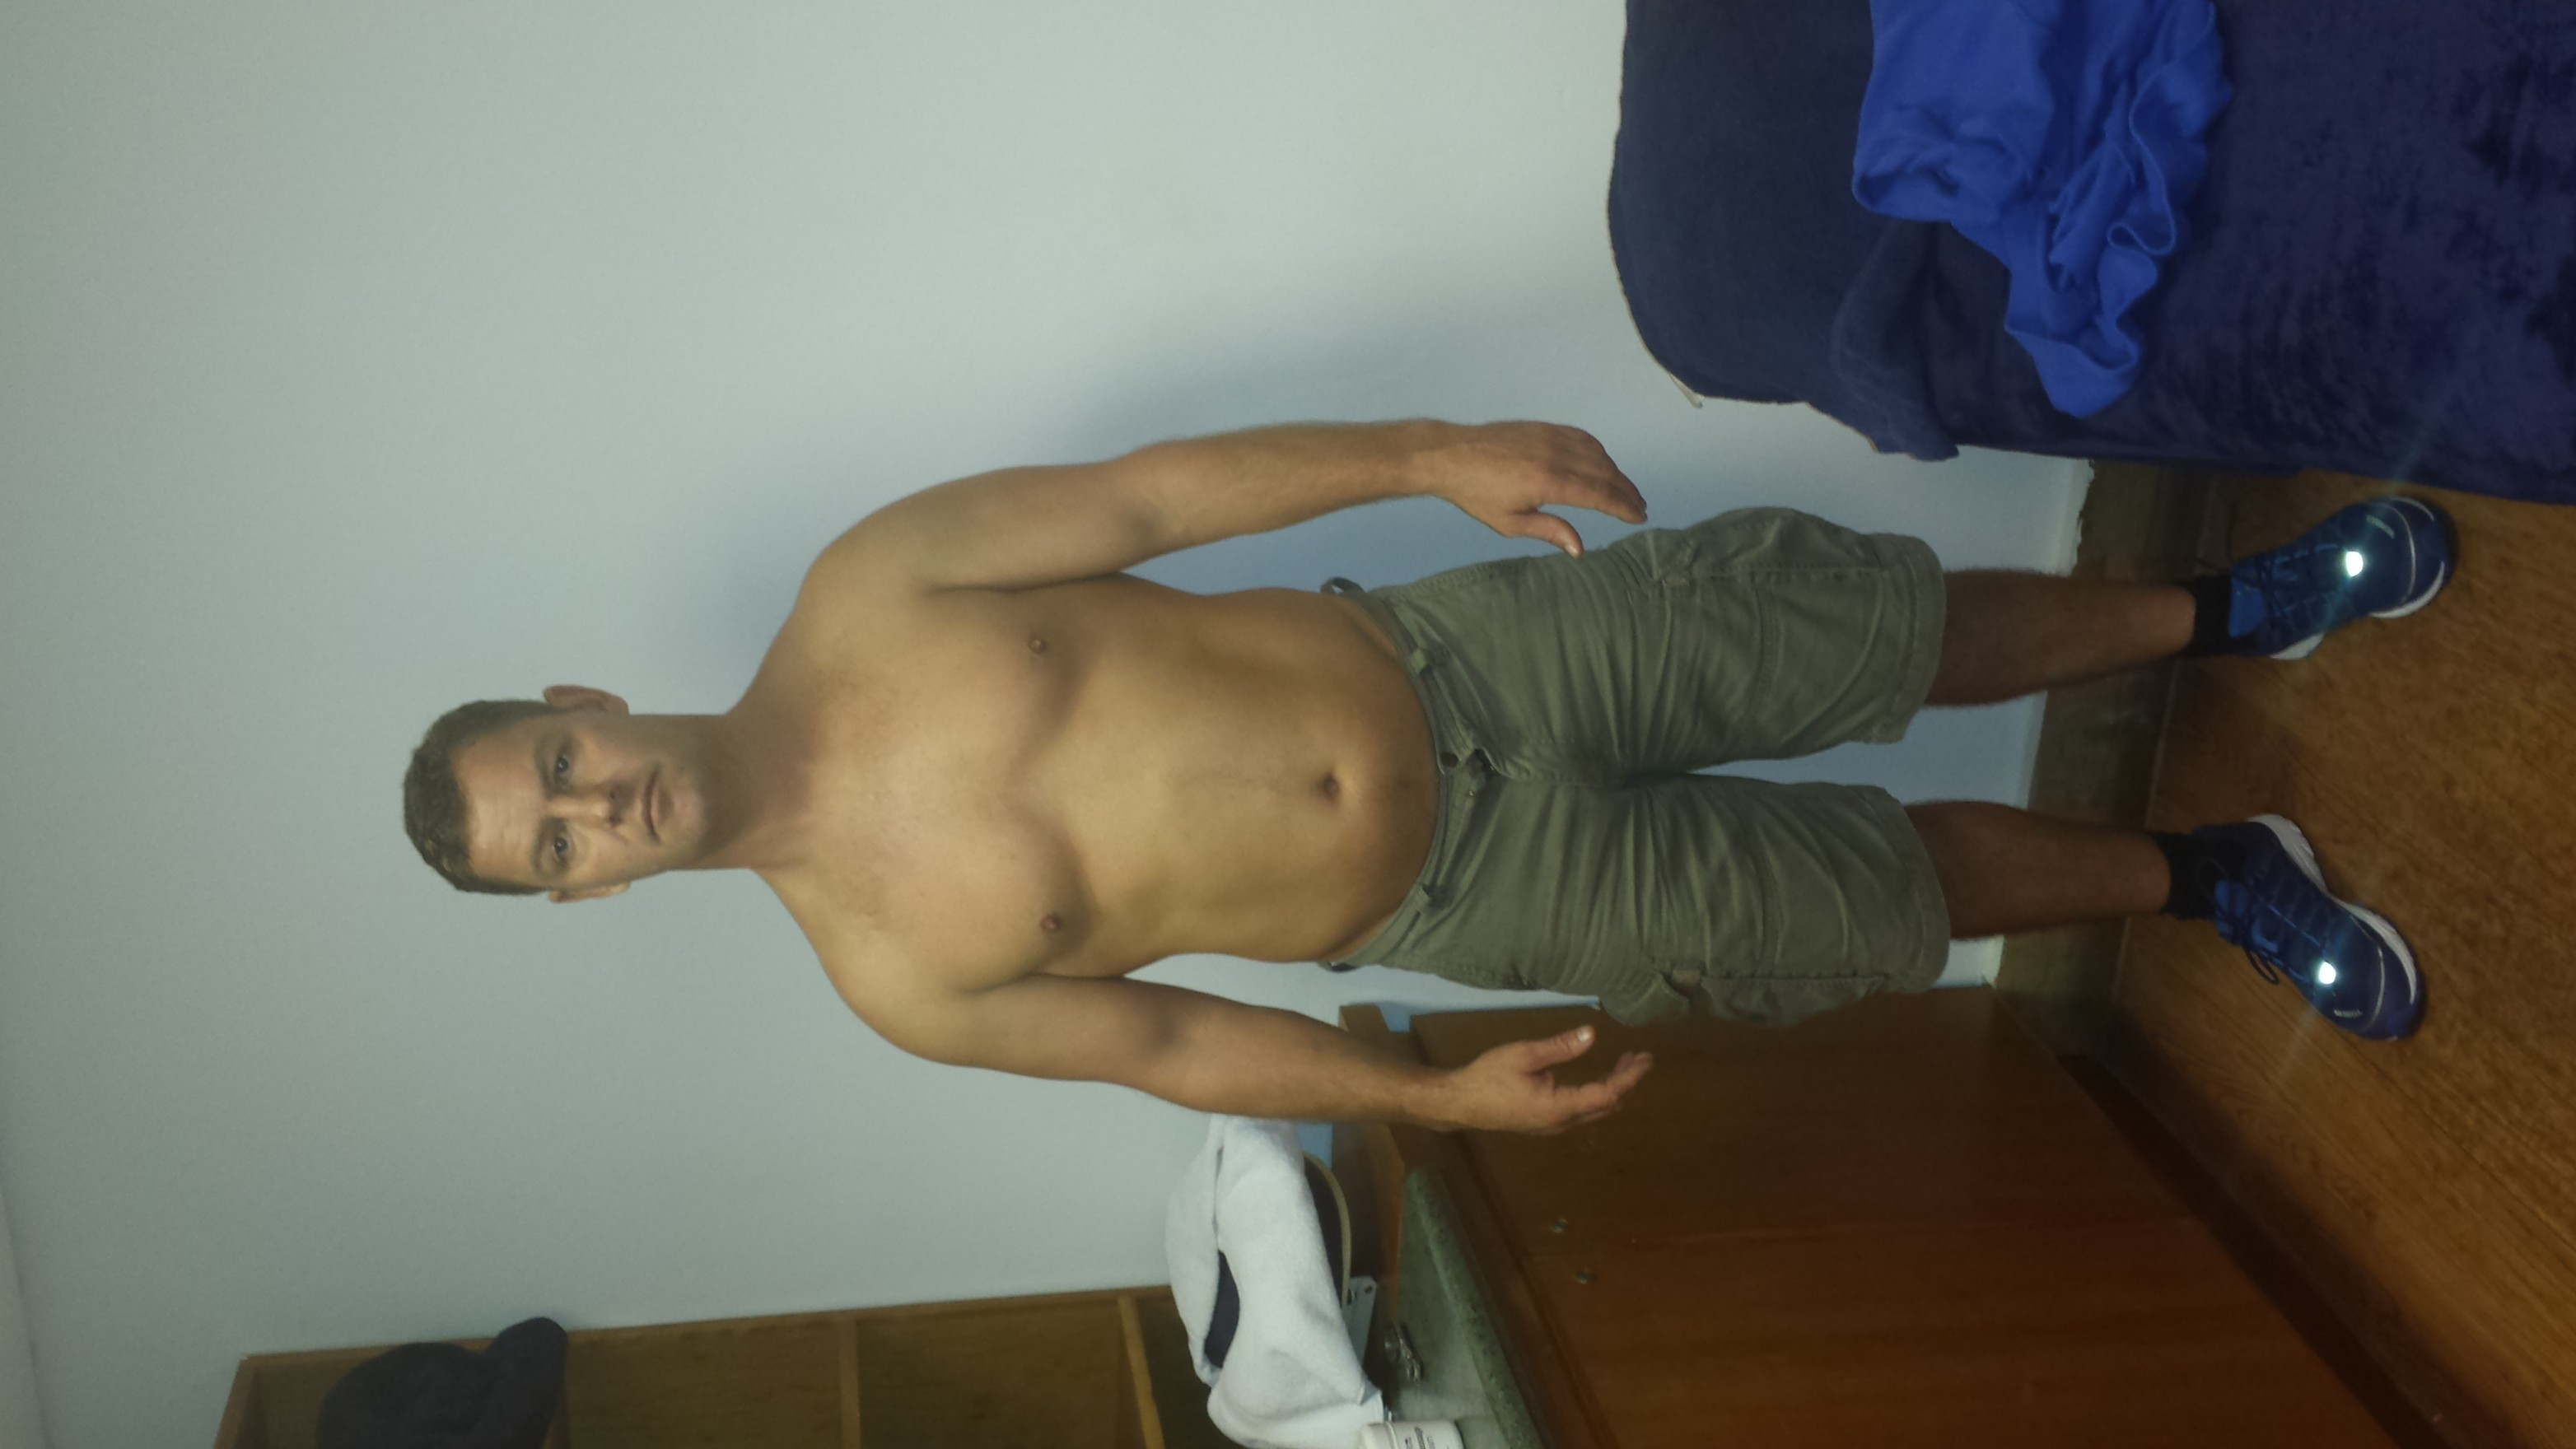 Before the warrior diet 98kgs